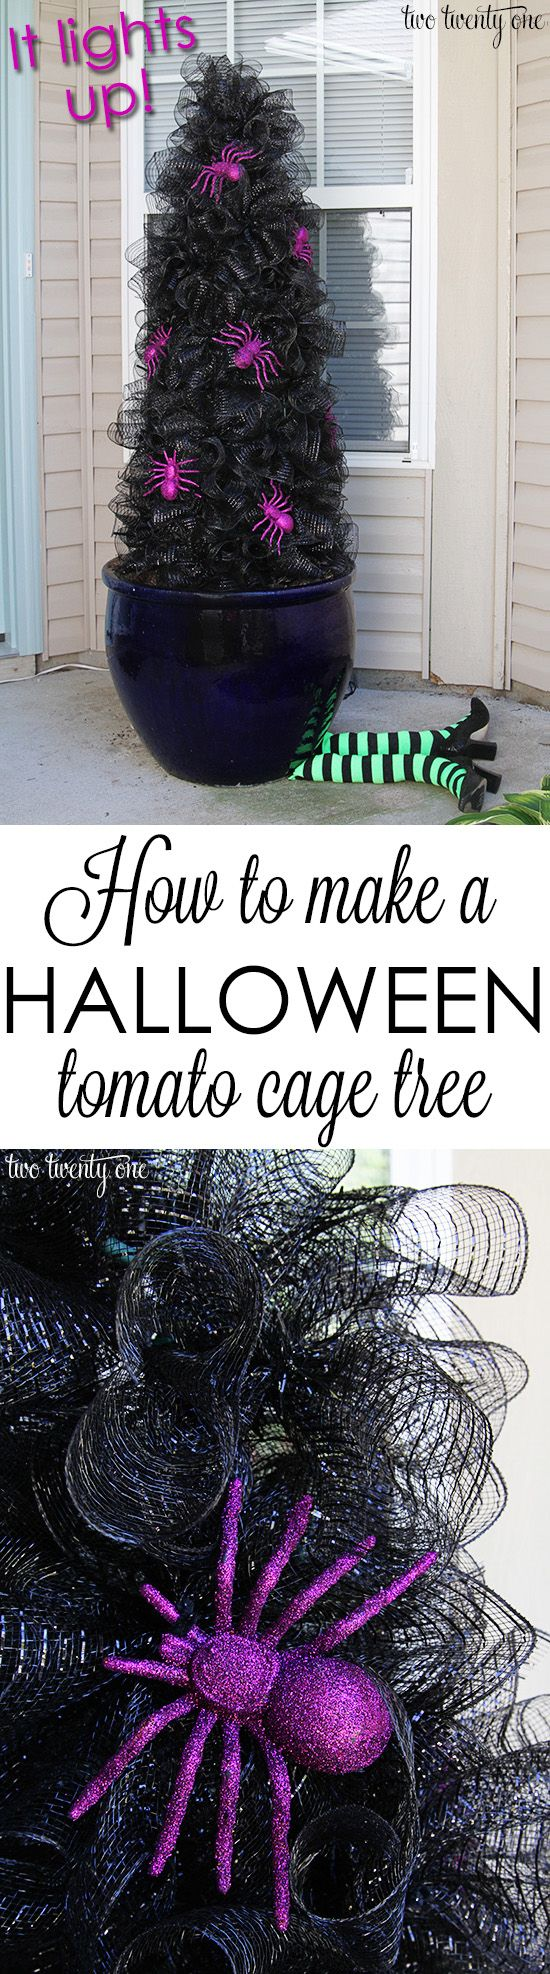 Brittany, you could make a Christmas version easy. Halloween Tomato Cage Tree